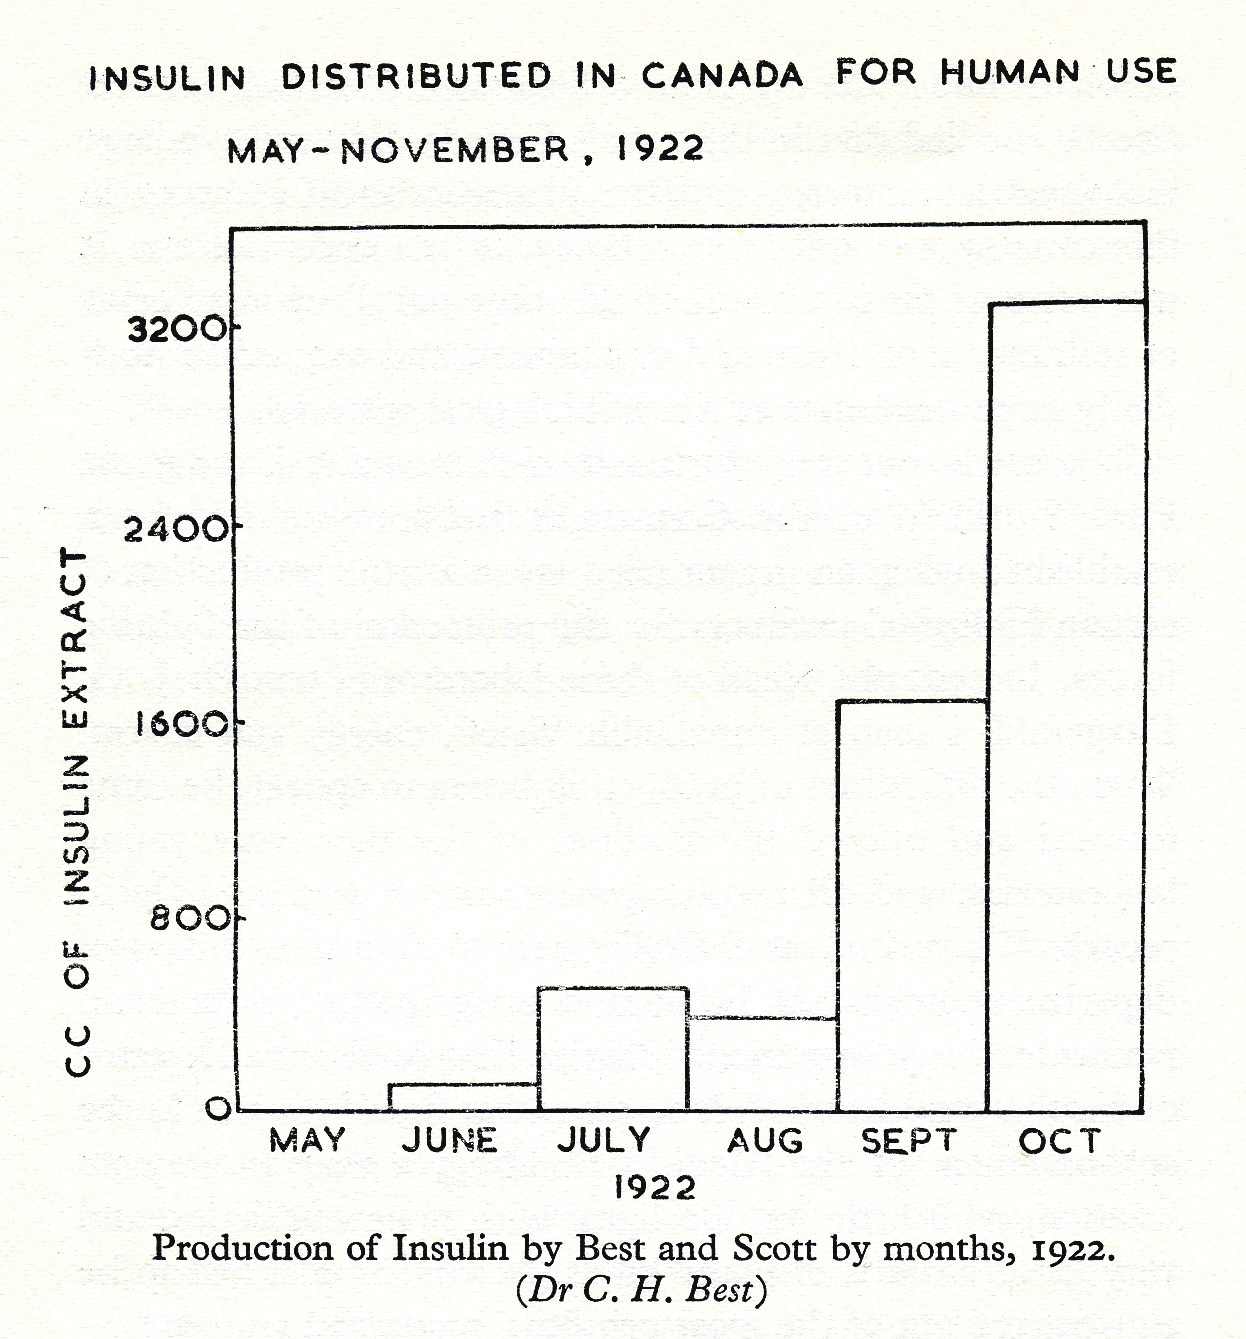 Chart illustrating the growth in insulin production at Connaught Laboratories from May to November 1922.